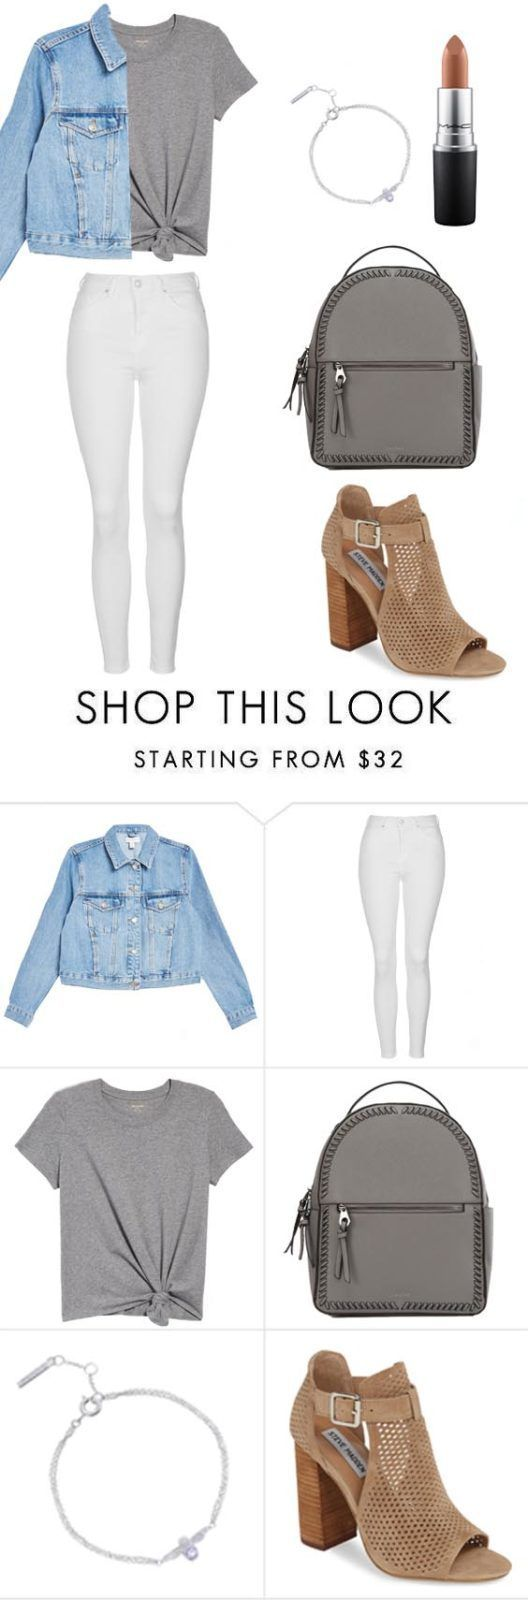 10 Summer Outfits to Wear Now Denim Jacket, white jeans, grey shirt and grey bag